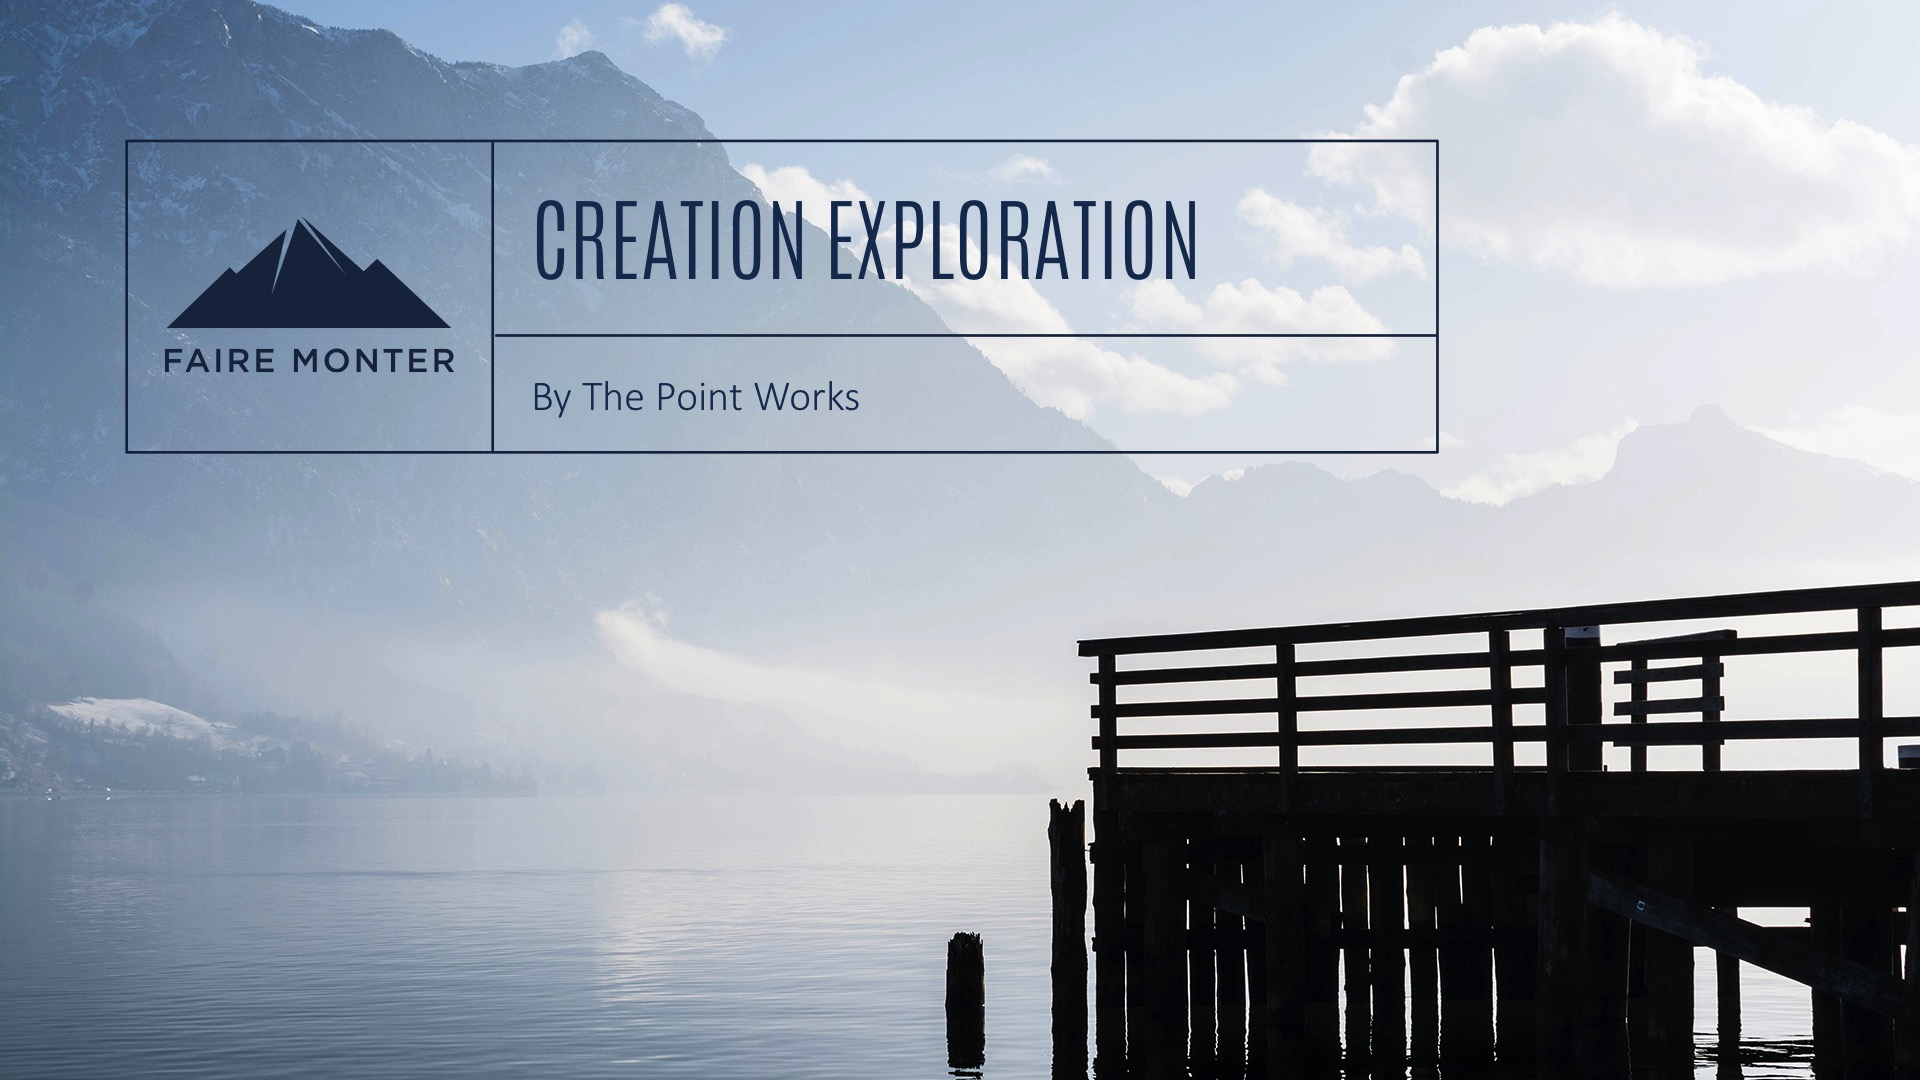 Creation Exploration